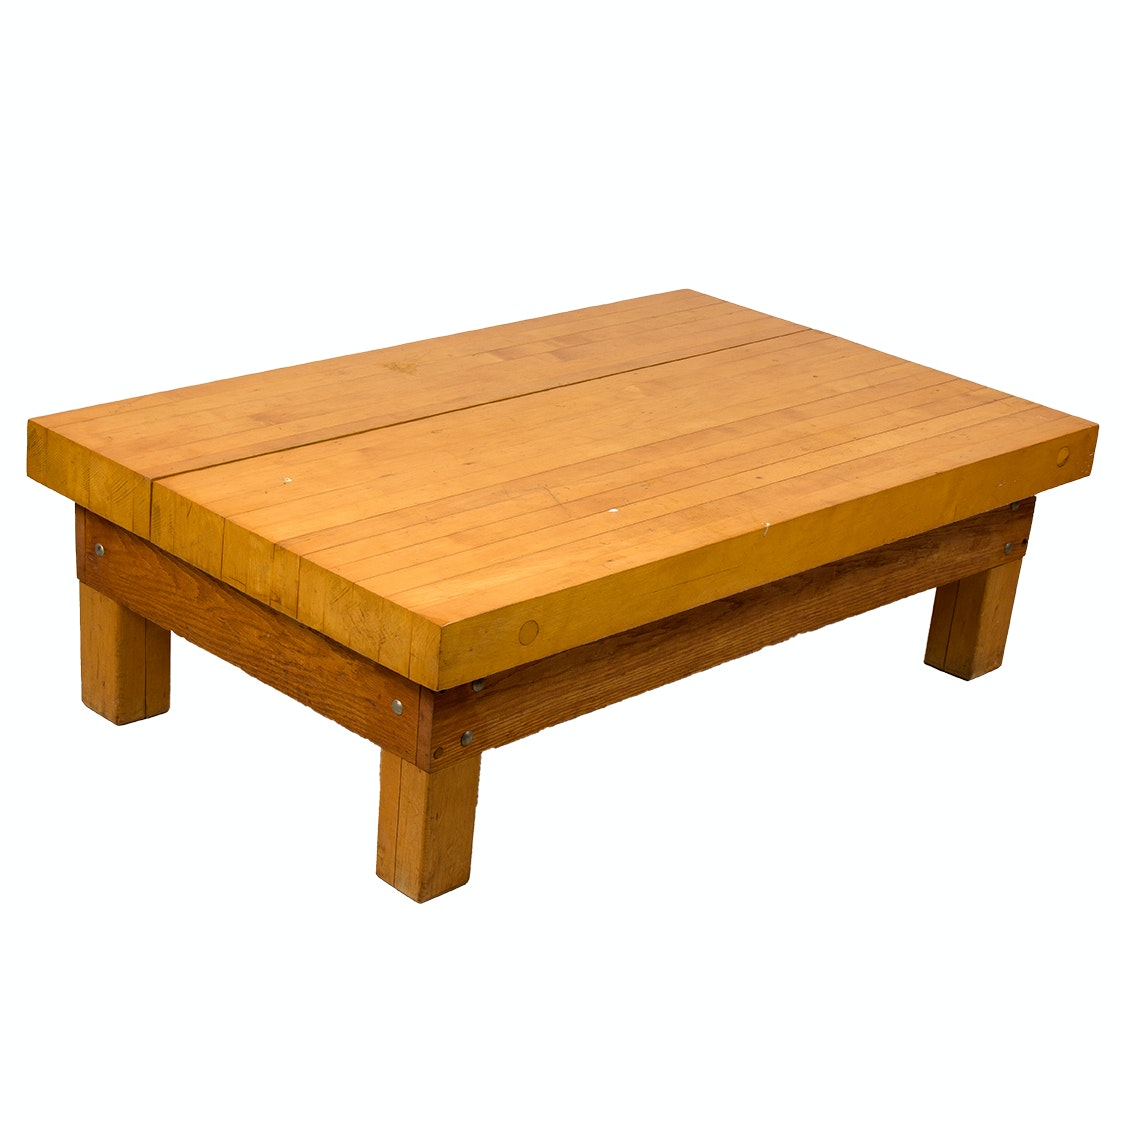 Butcher Block Style Coffee Table